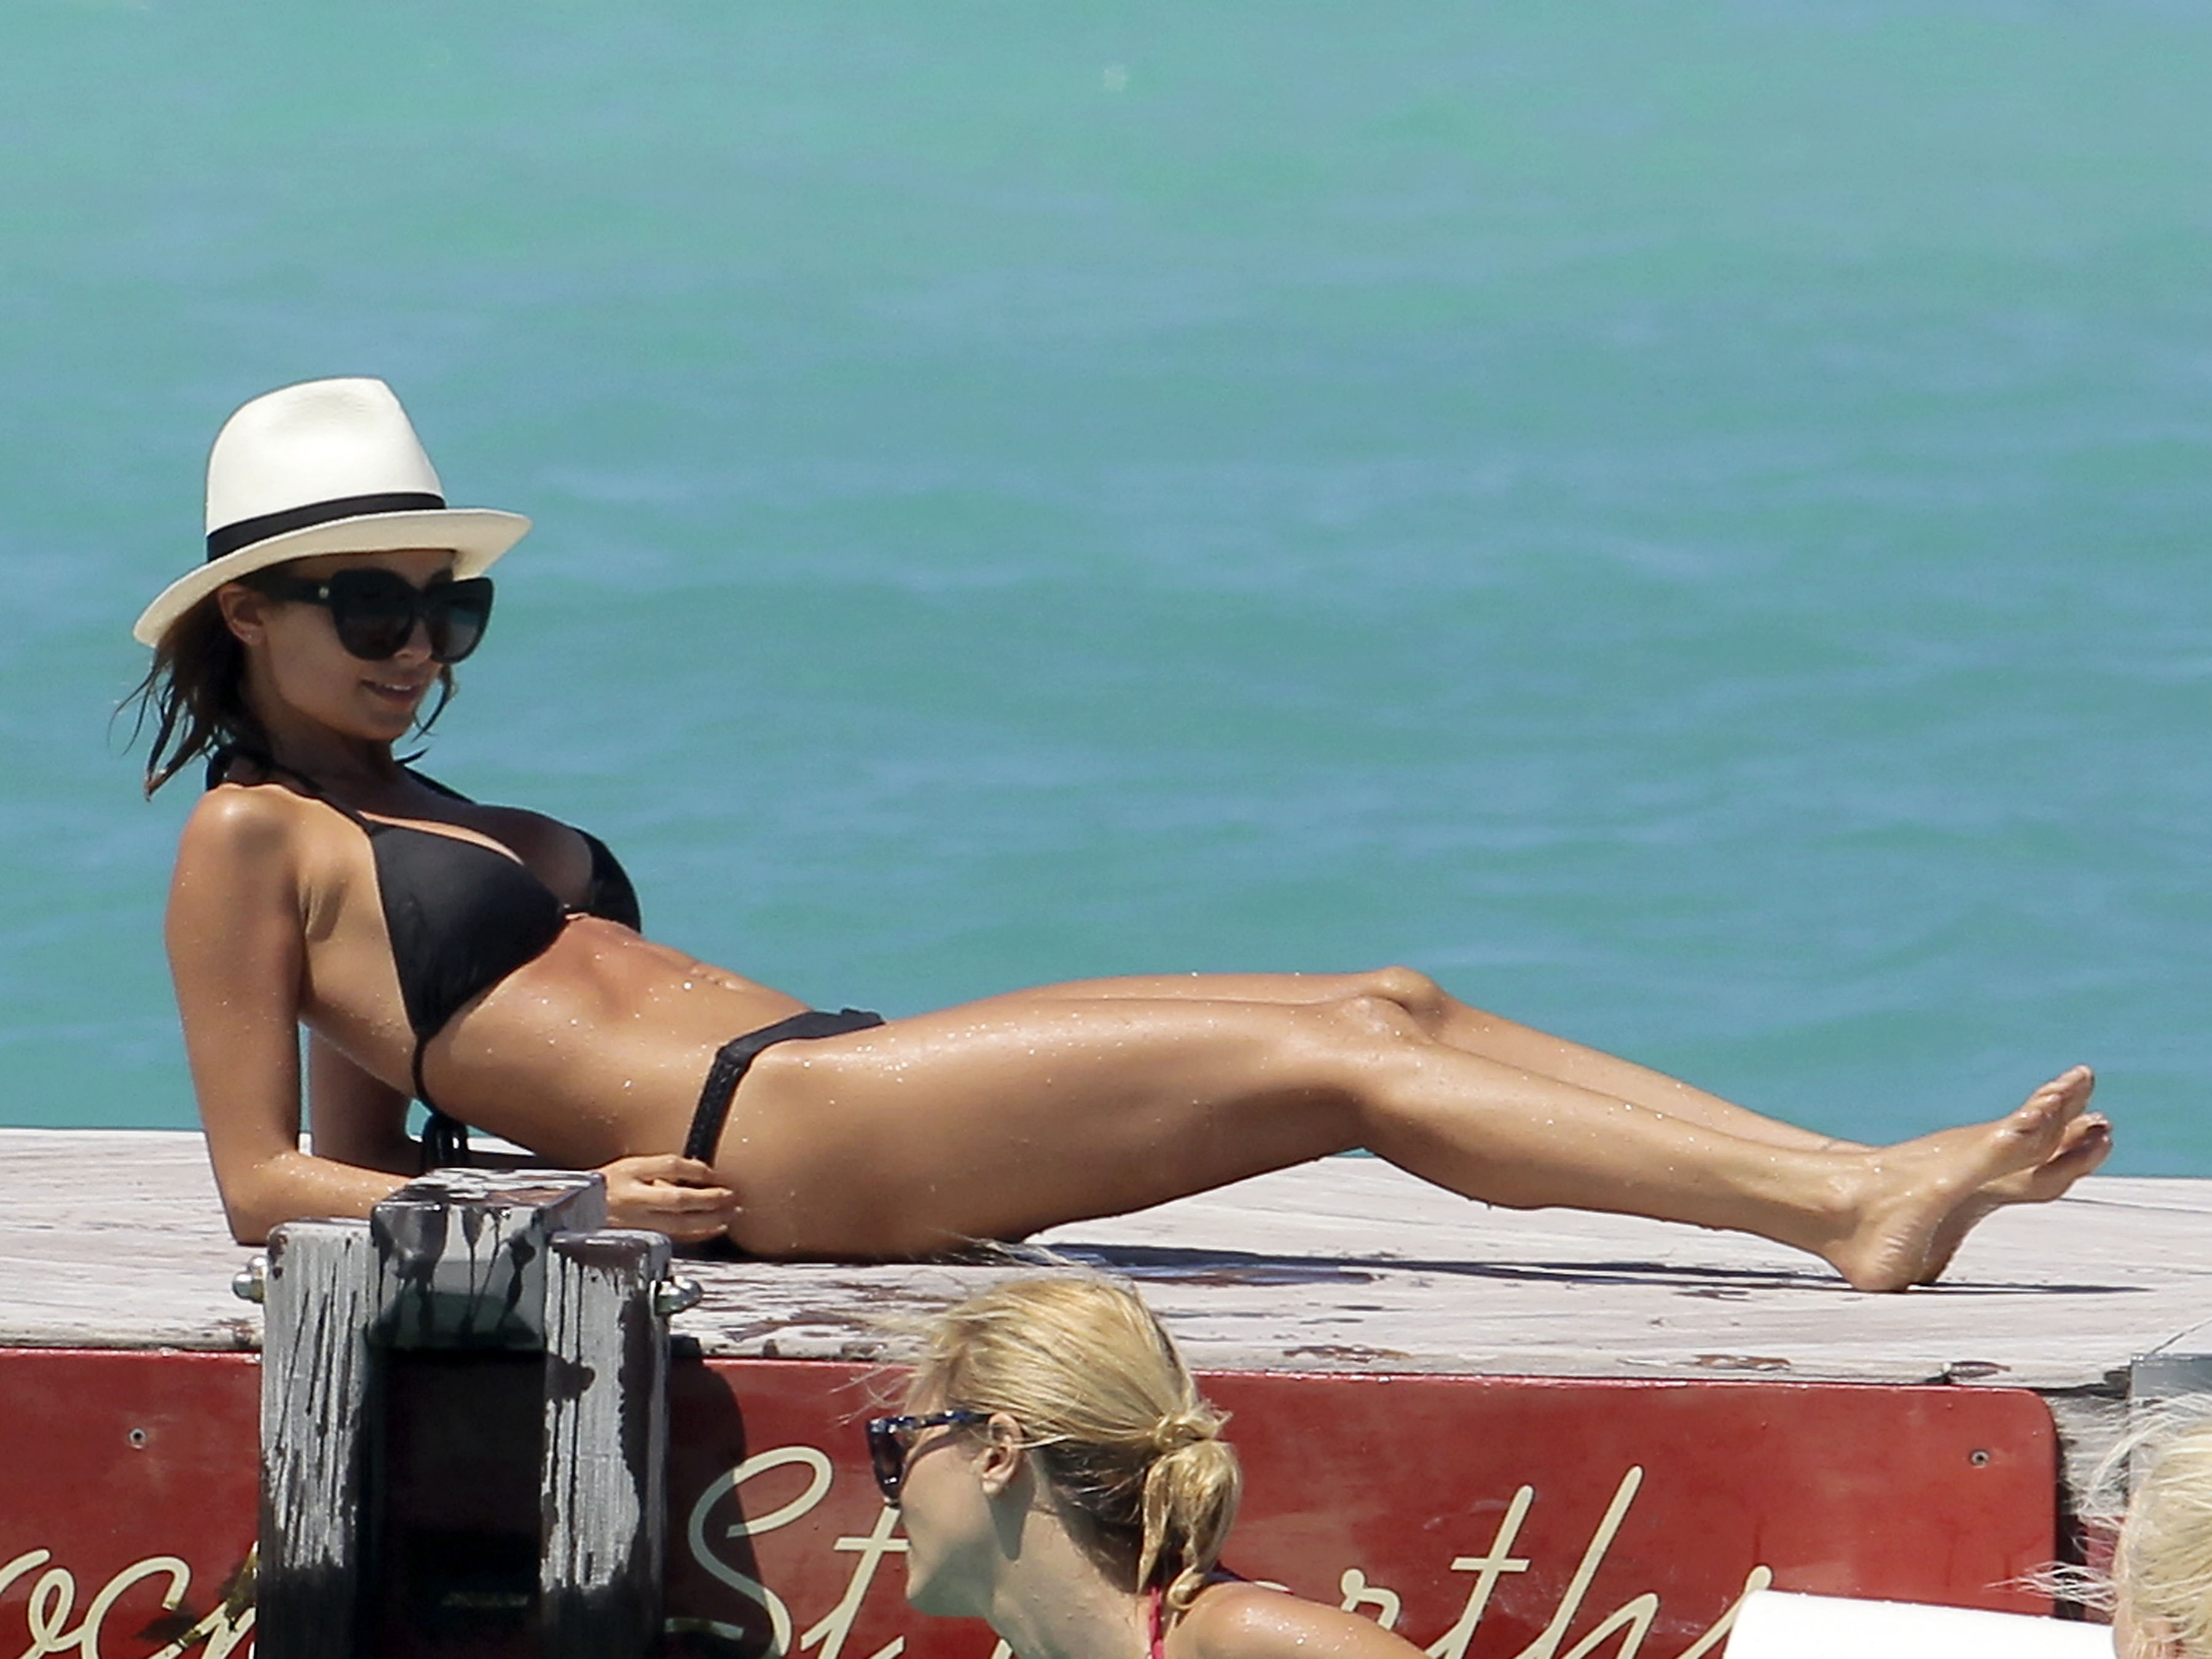 Nicole Richie lounged in St. Barts in April wearing a black triangle bikini, House of Harlow cat-eye sunglasses, and a crisp white fedora.